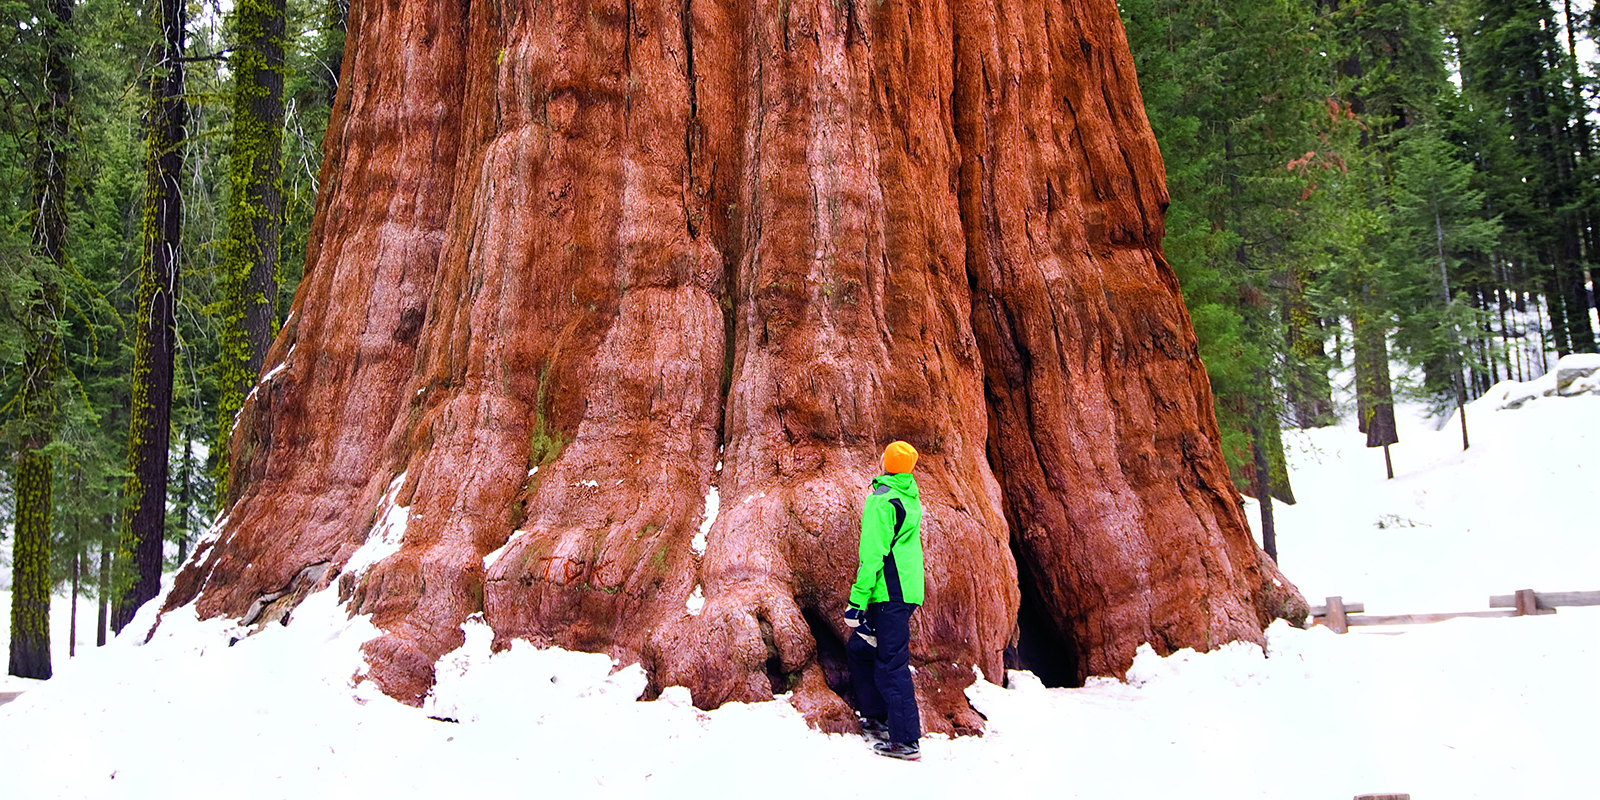 Giant Sequoia Save The Redwoods League